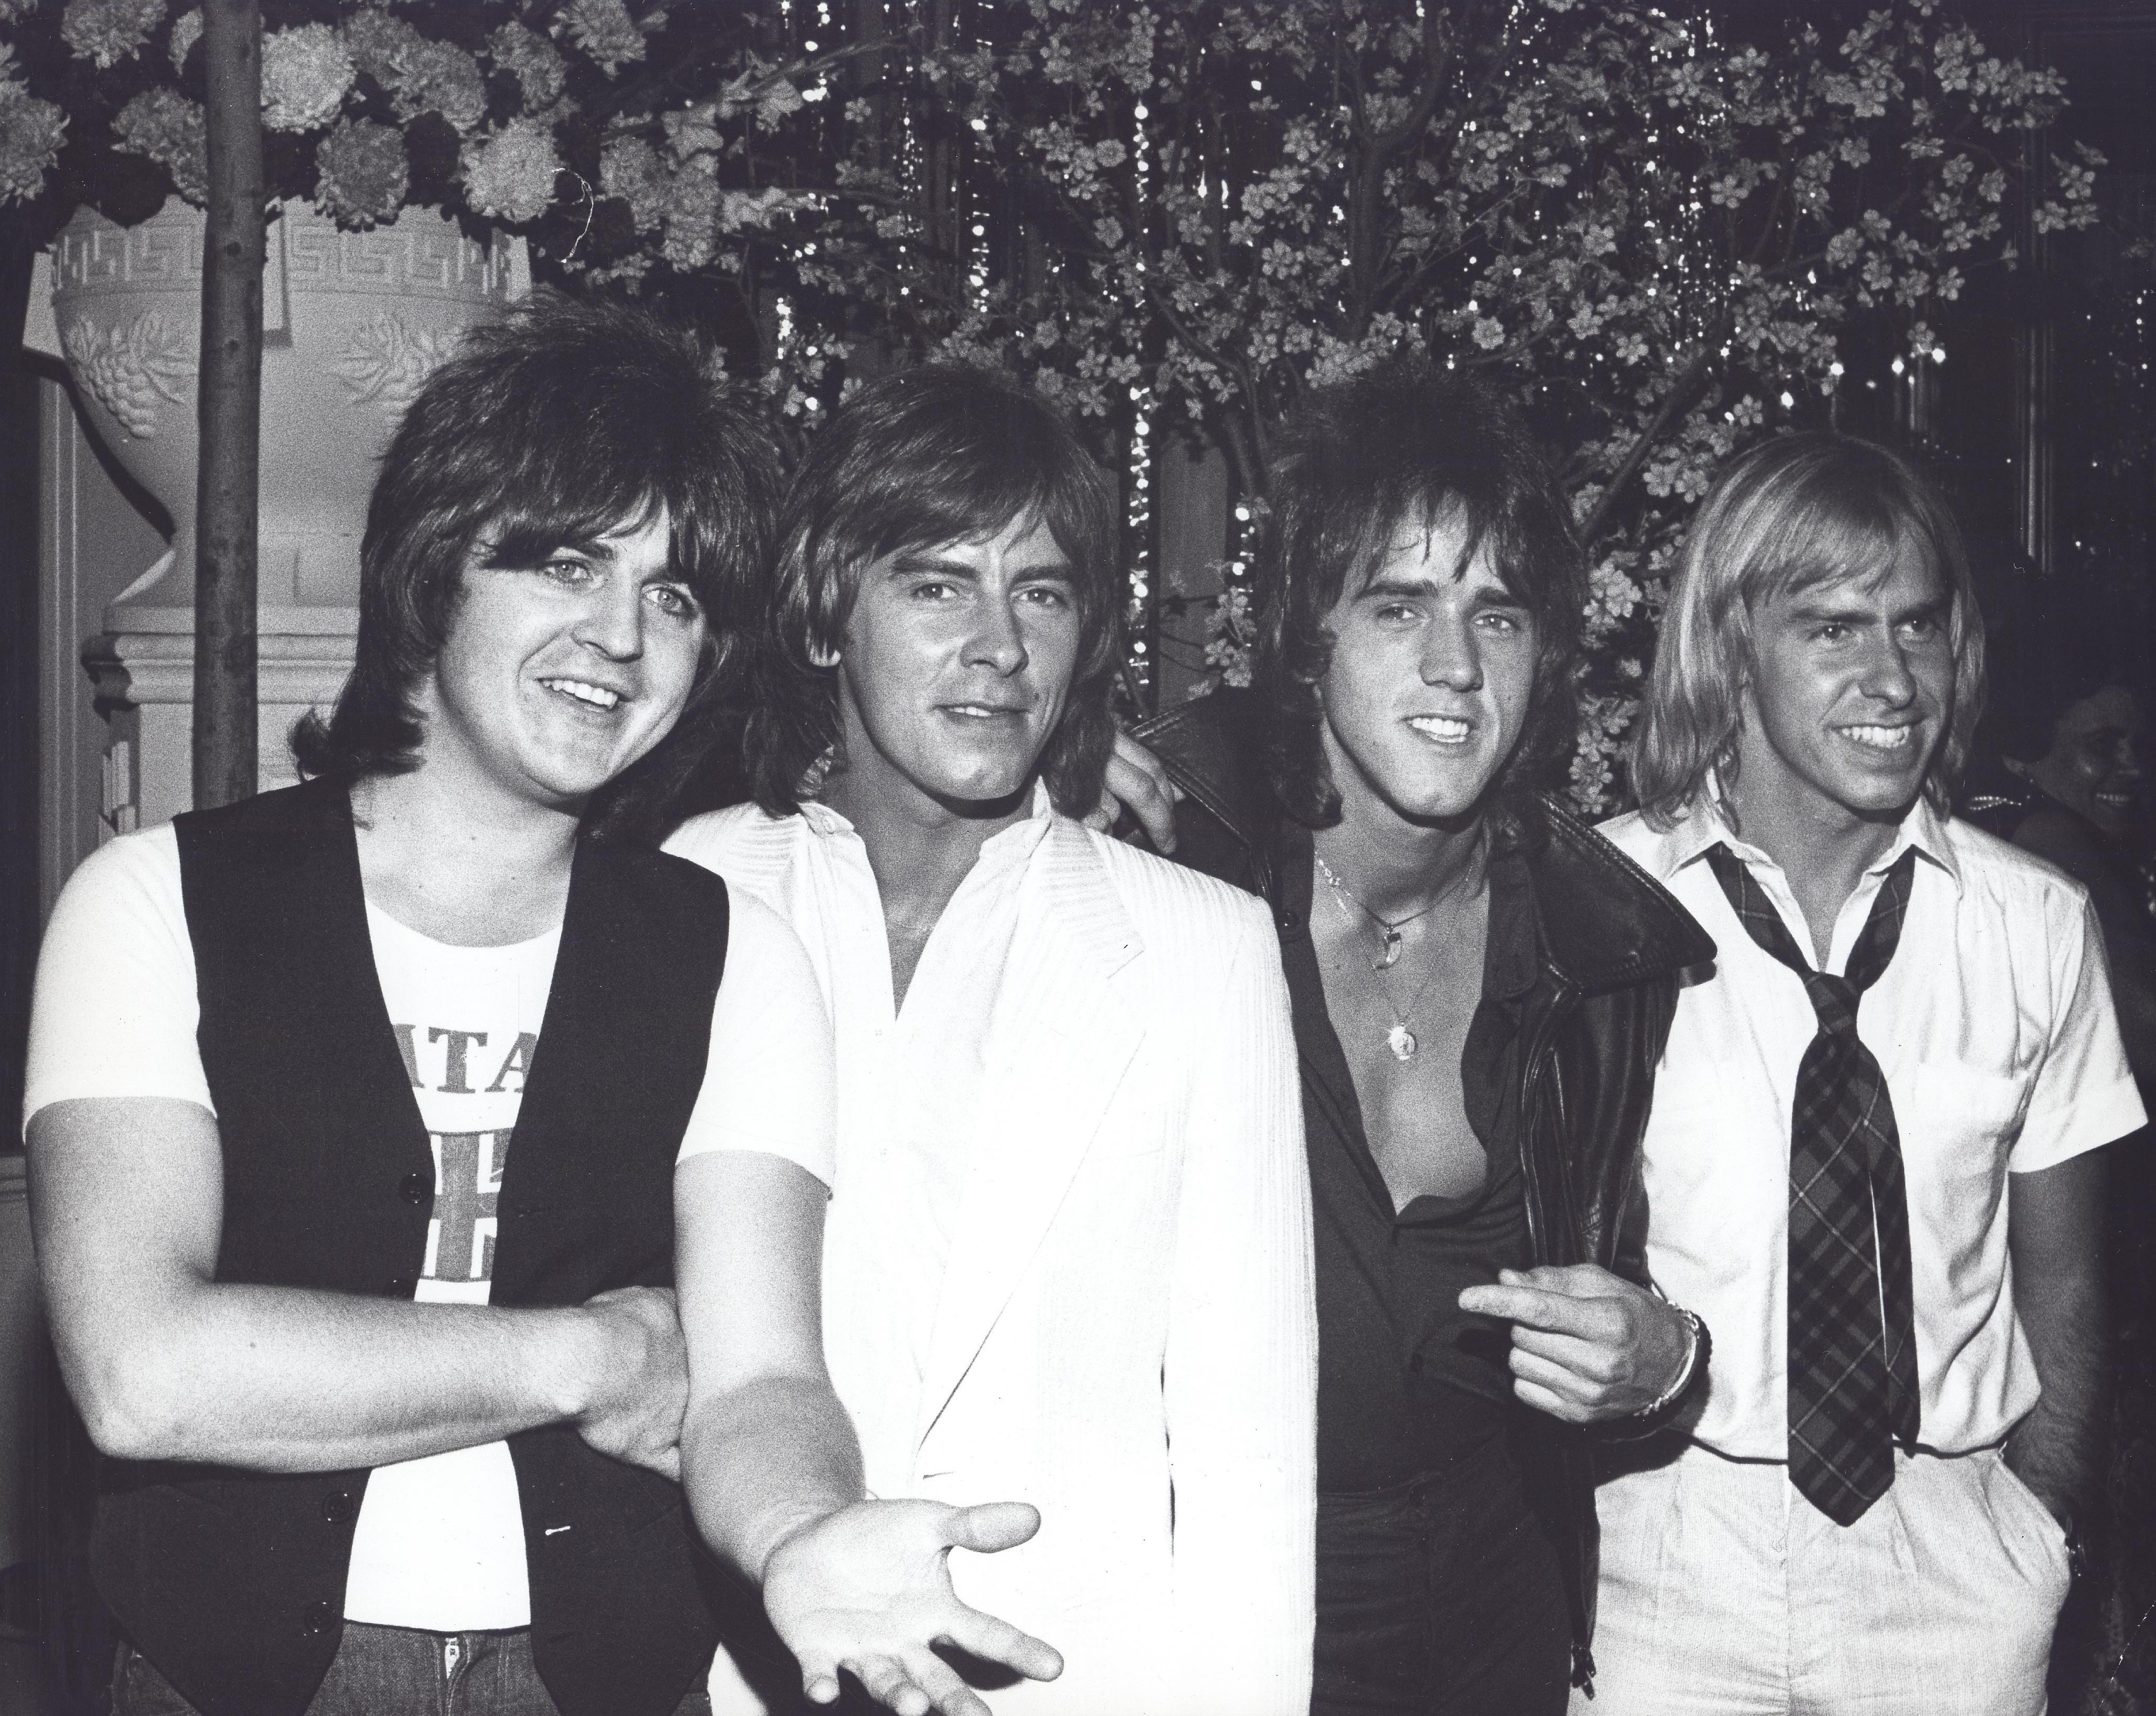 Bay City Rollers Credit: 252080_Globe Photos/MediaPunch /IPX